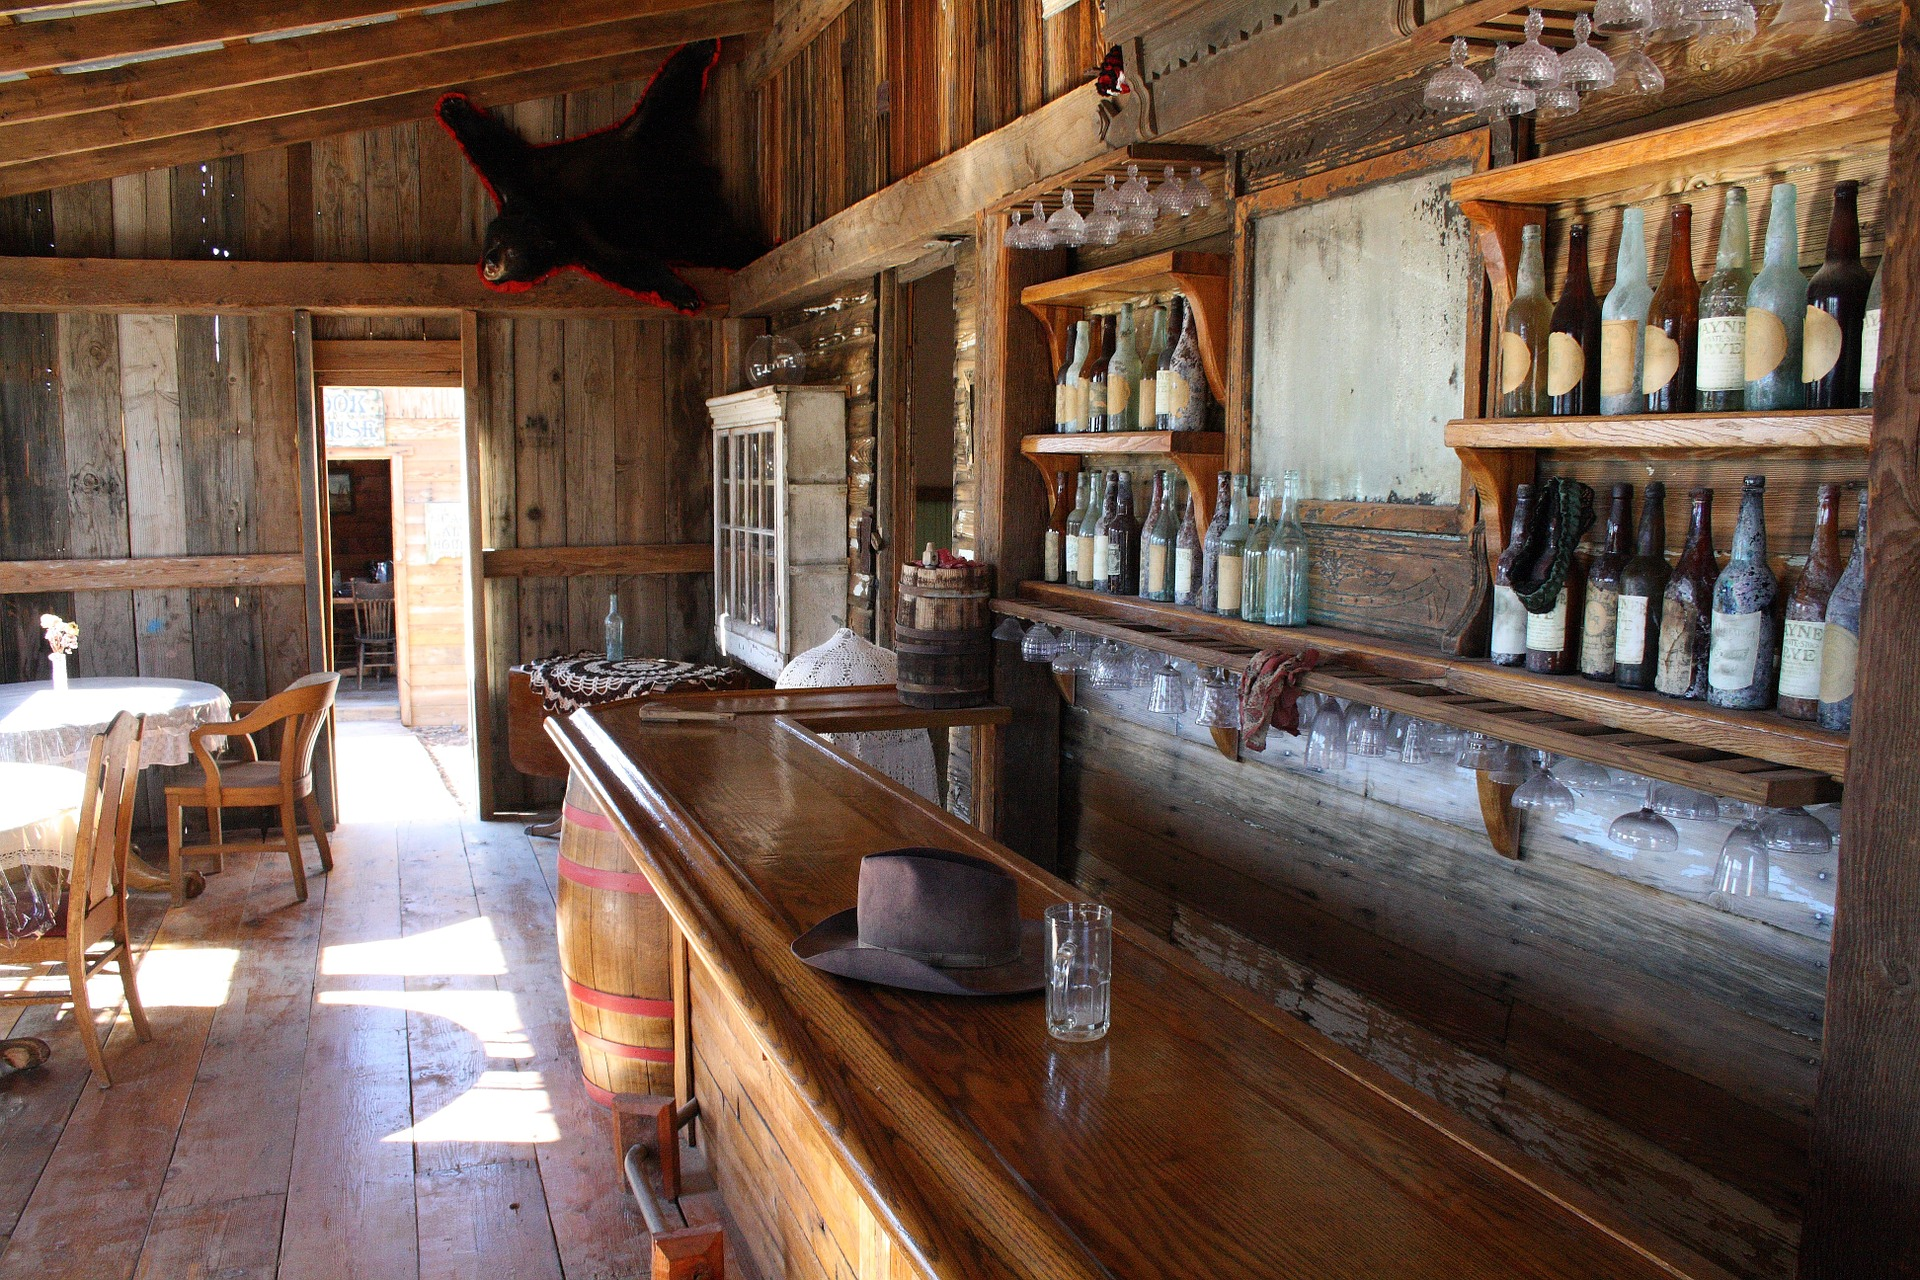 An old western bar with shine on the floor and bright inside with wood and bottles on the shelf to the right.